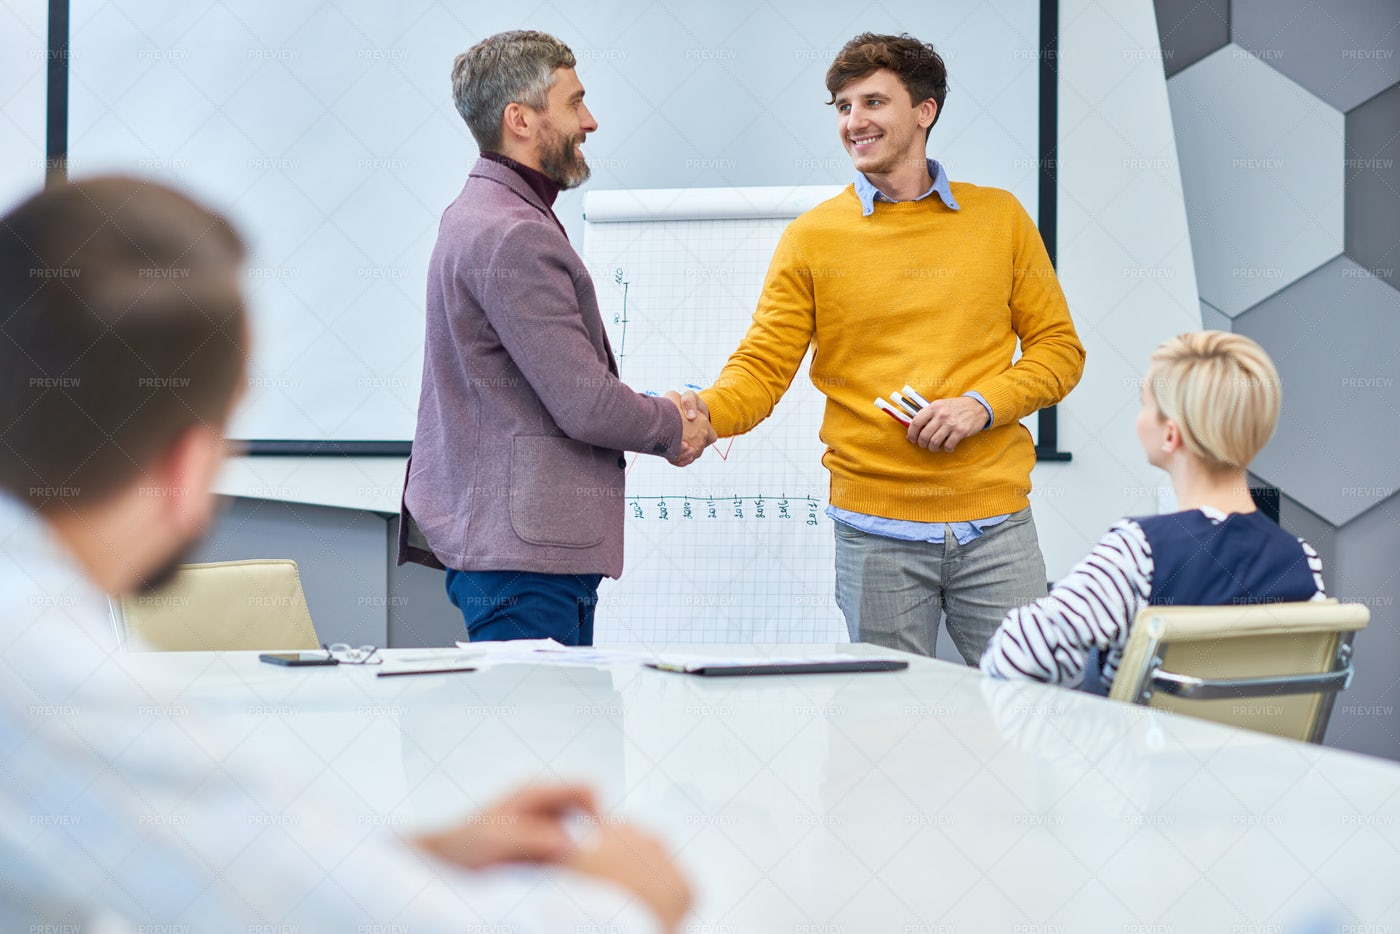 End Of Marketing Meeting In Office: Stock Photos